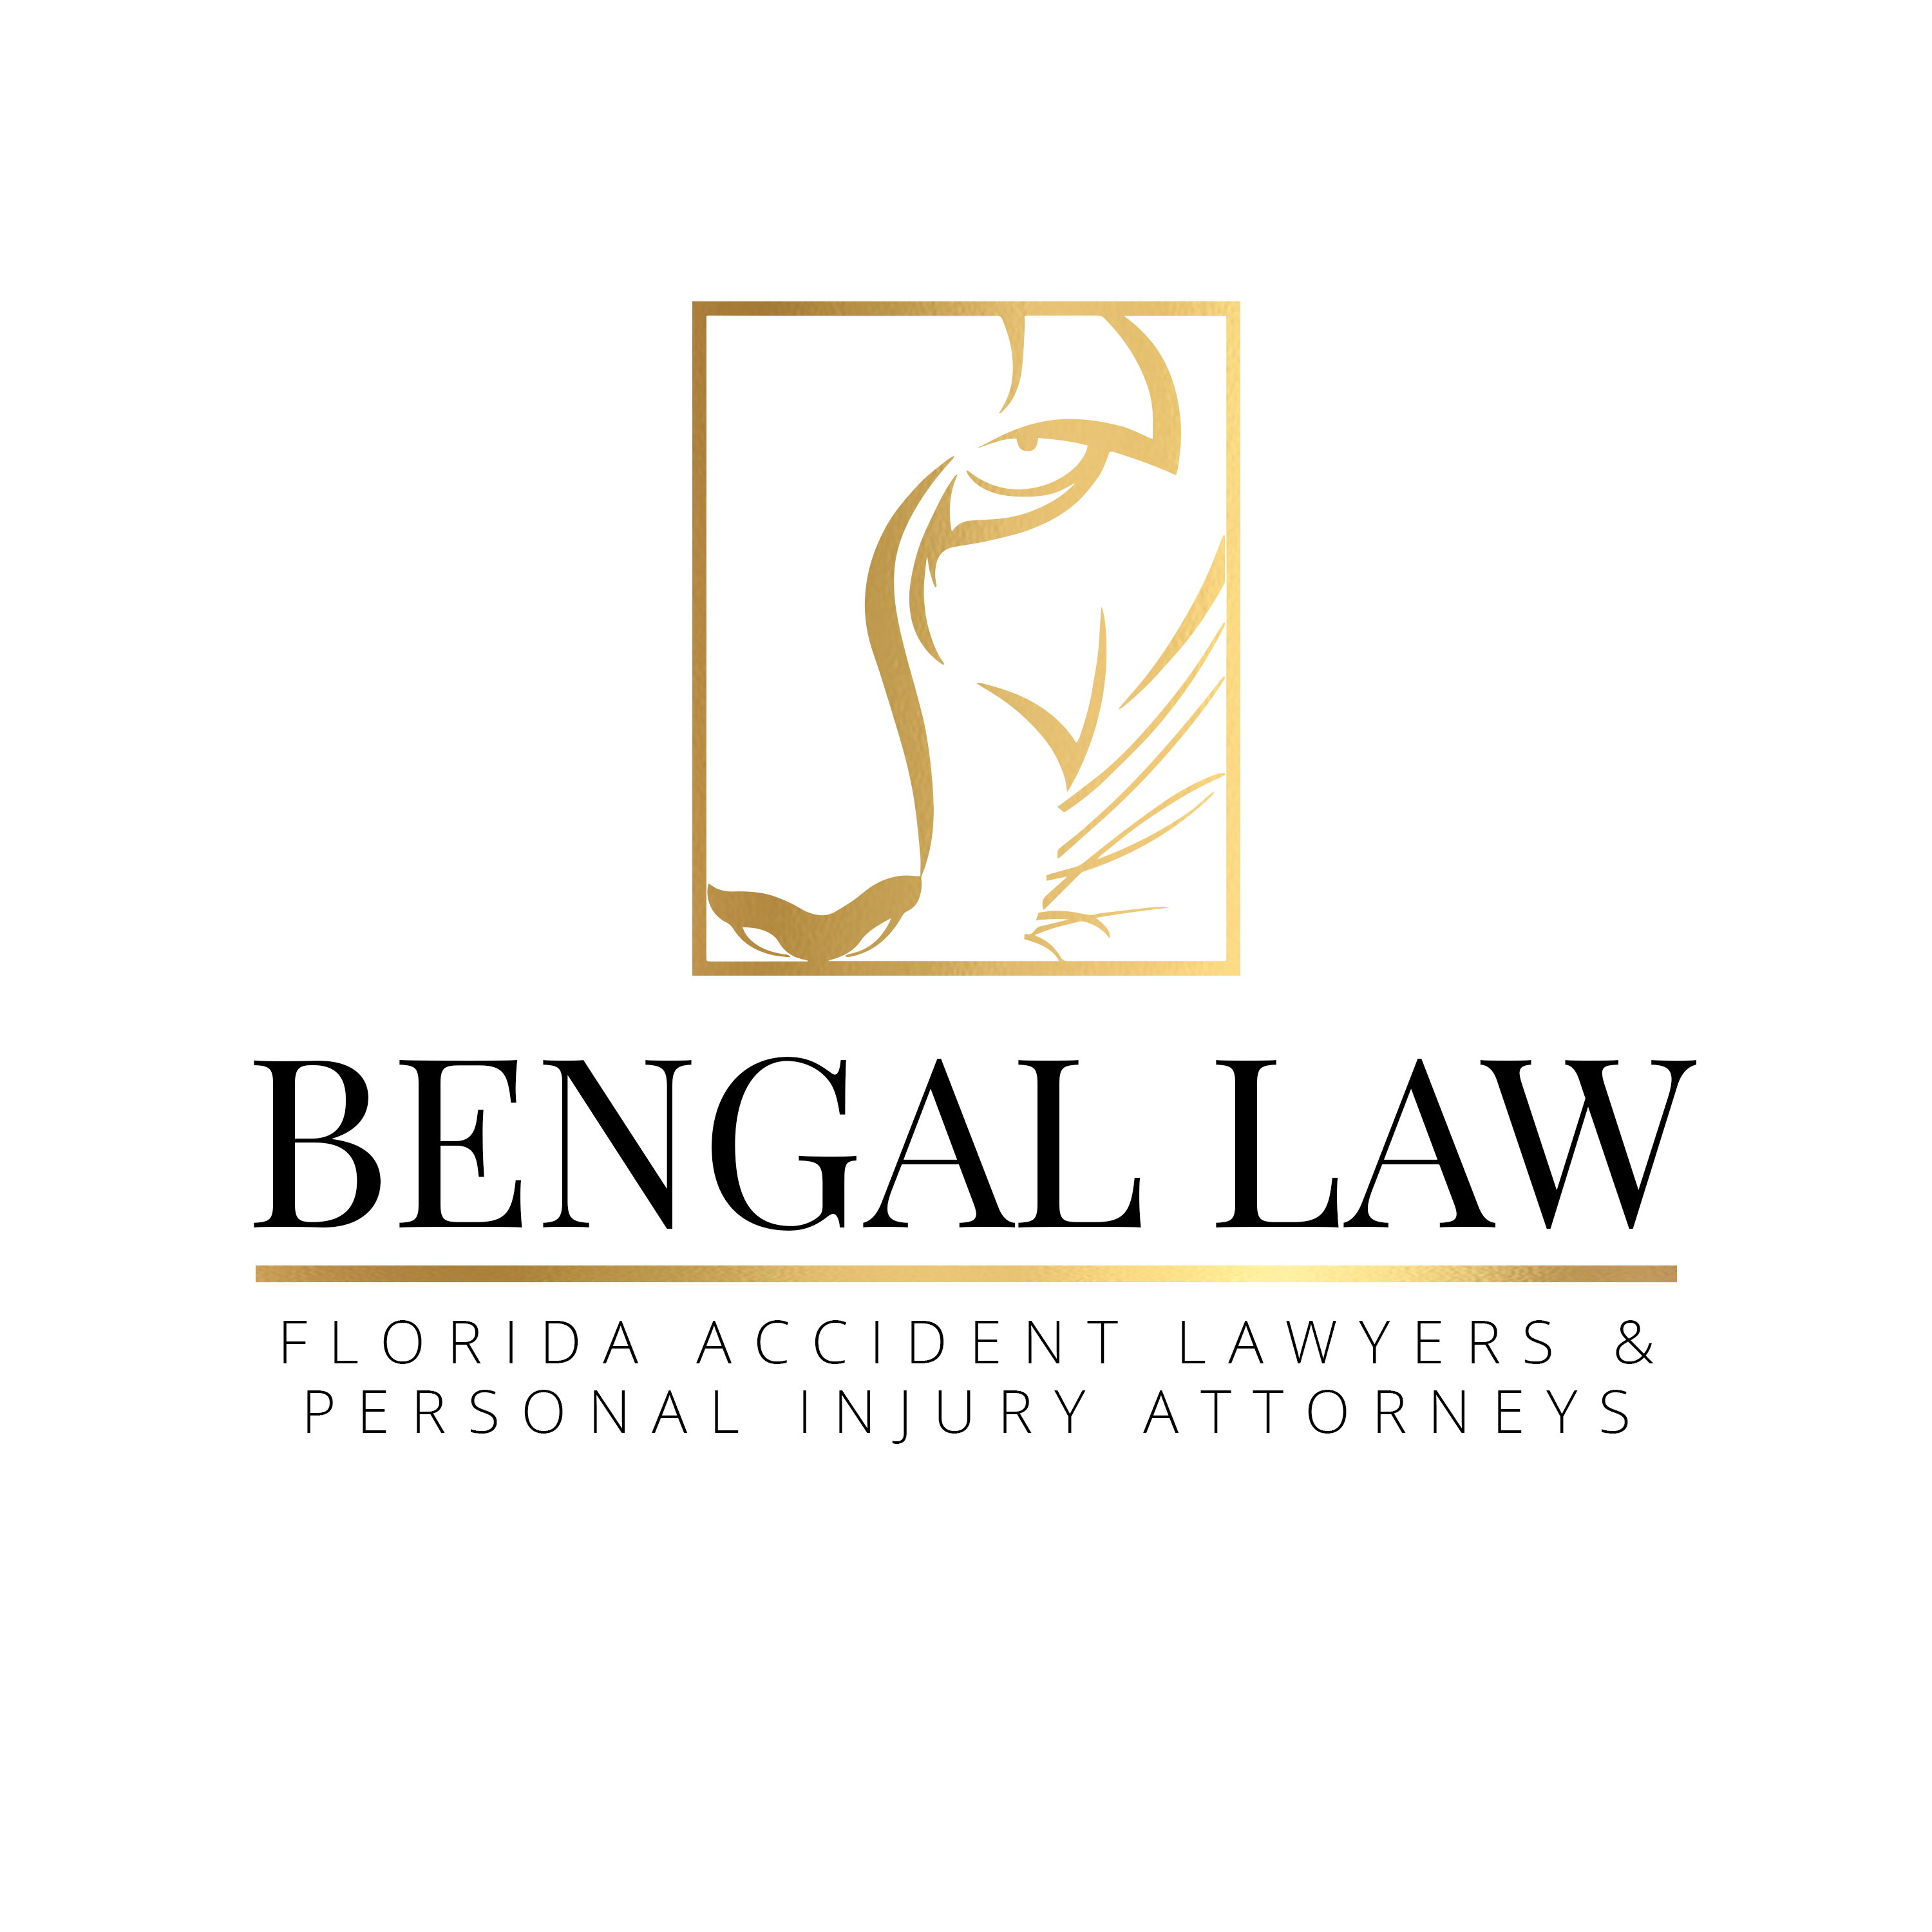 Bengal Law: Florida Accident Lawyers And Personal Injury Attorneys PLLC Is The Right Accident Attorney In Orlando, Florida